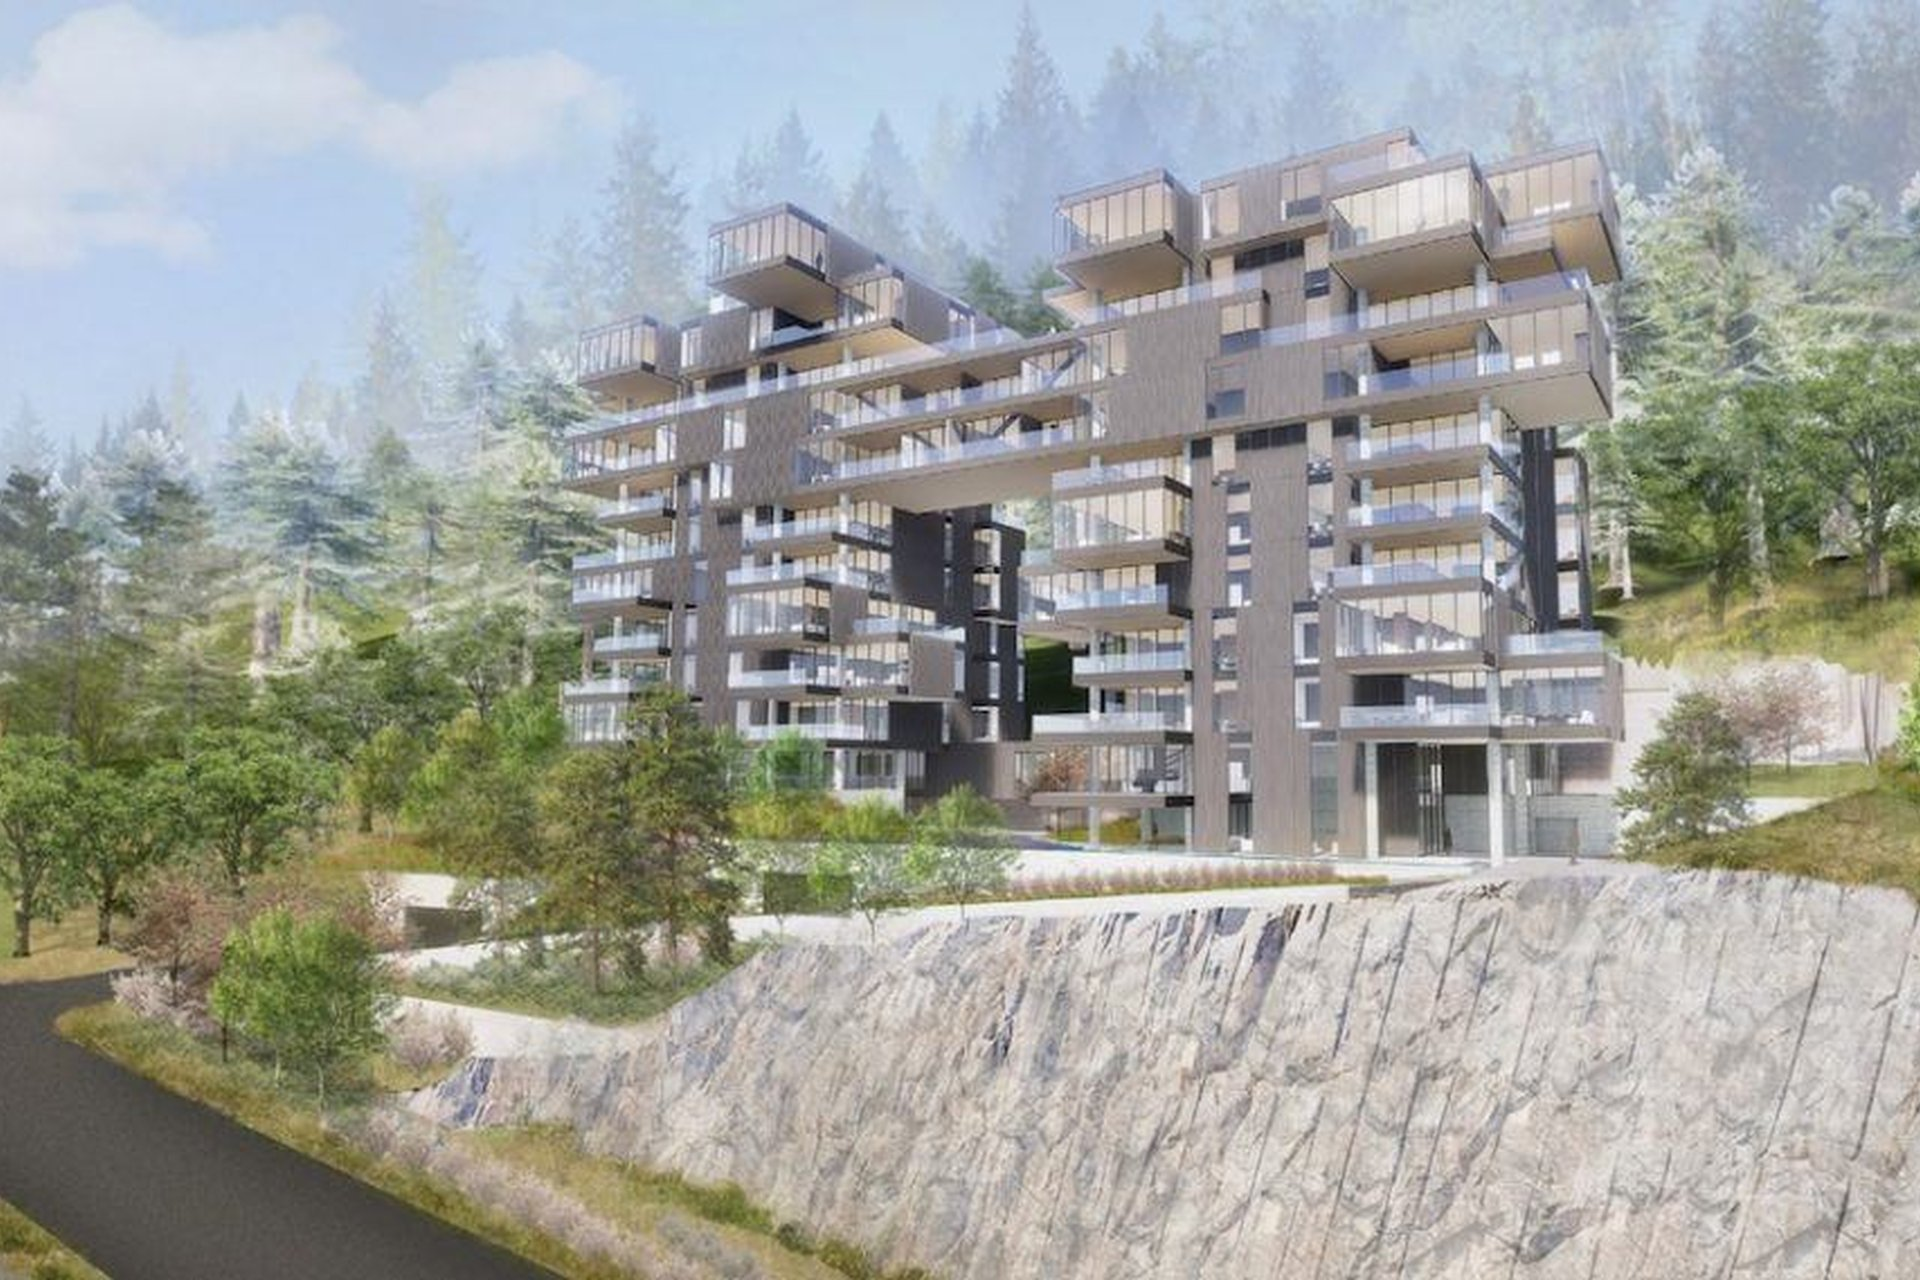 Treehouse - West Vancouver | Proposed New Development